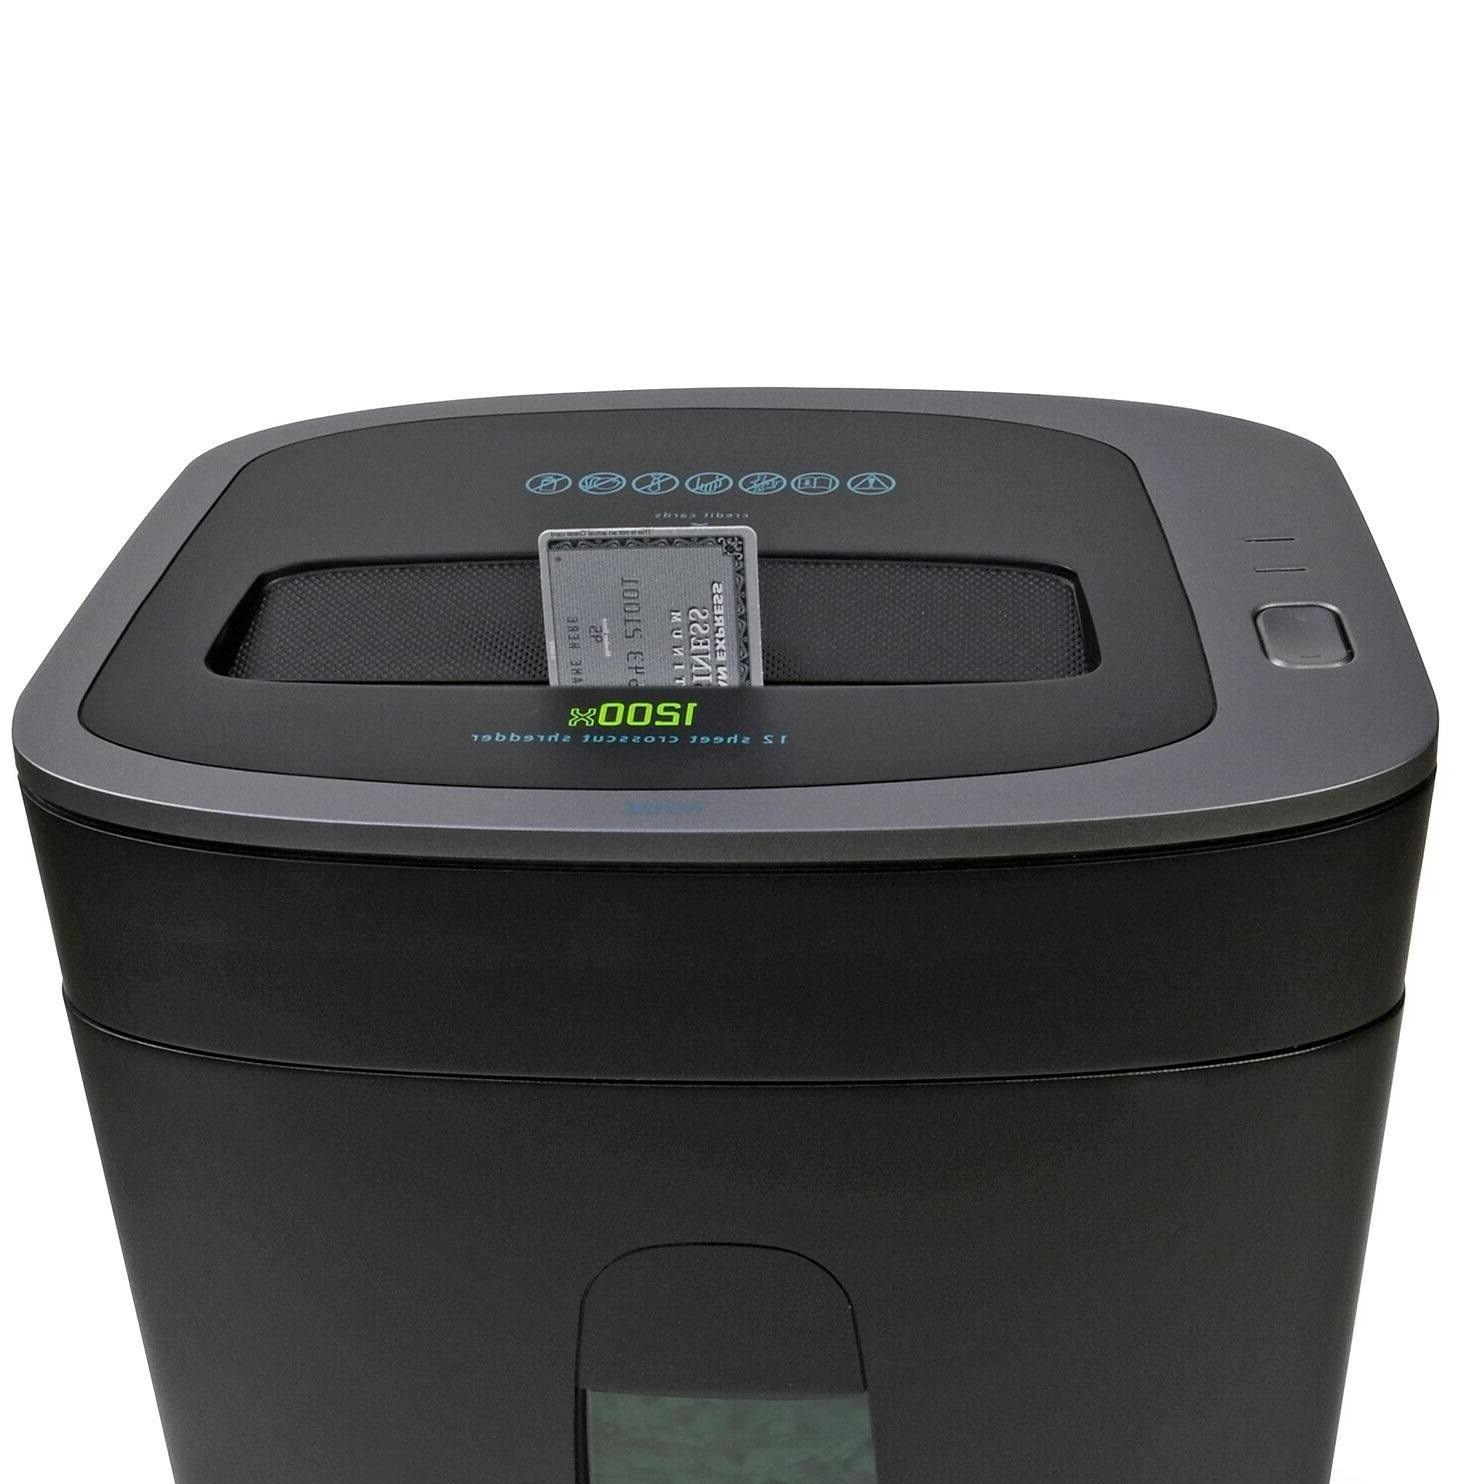 Royal Paper Shredder, 12 Sheet Capacity